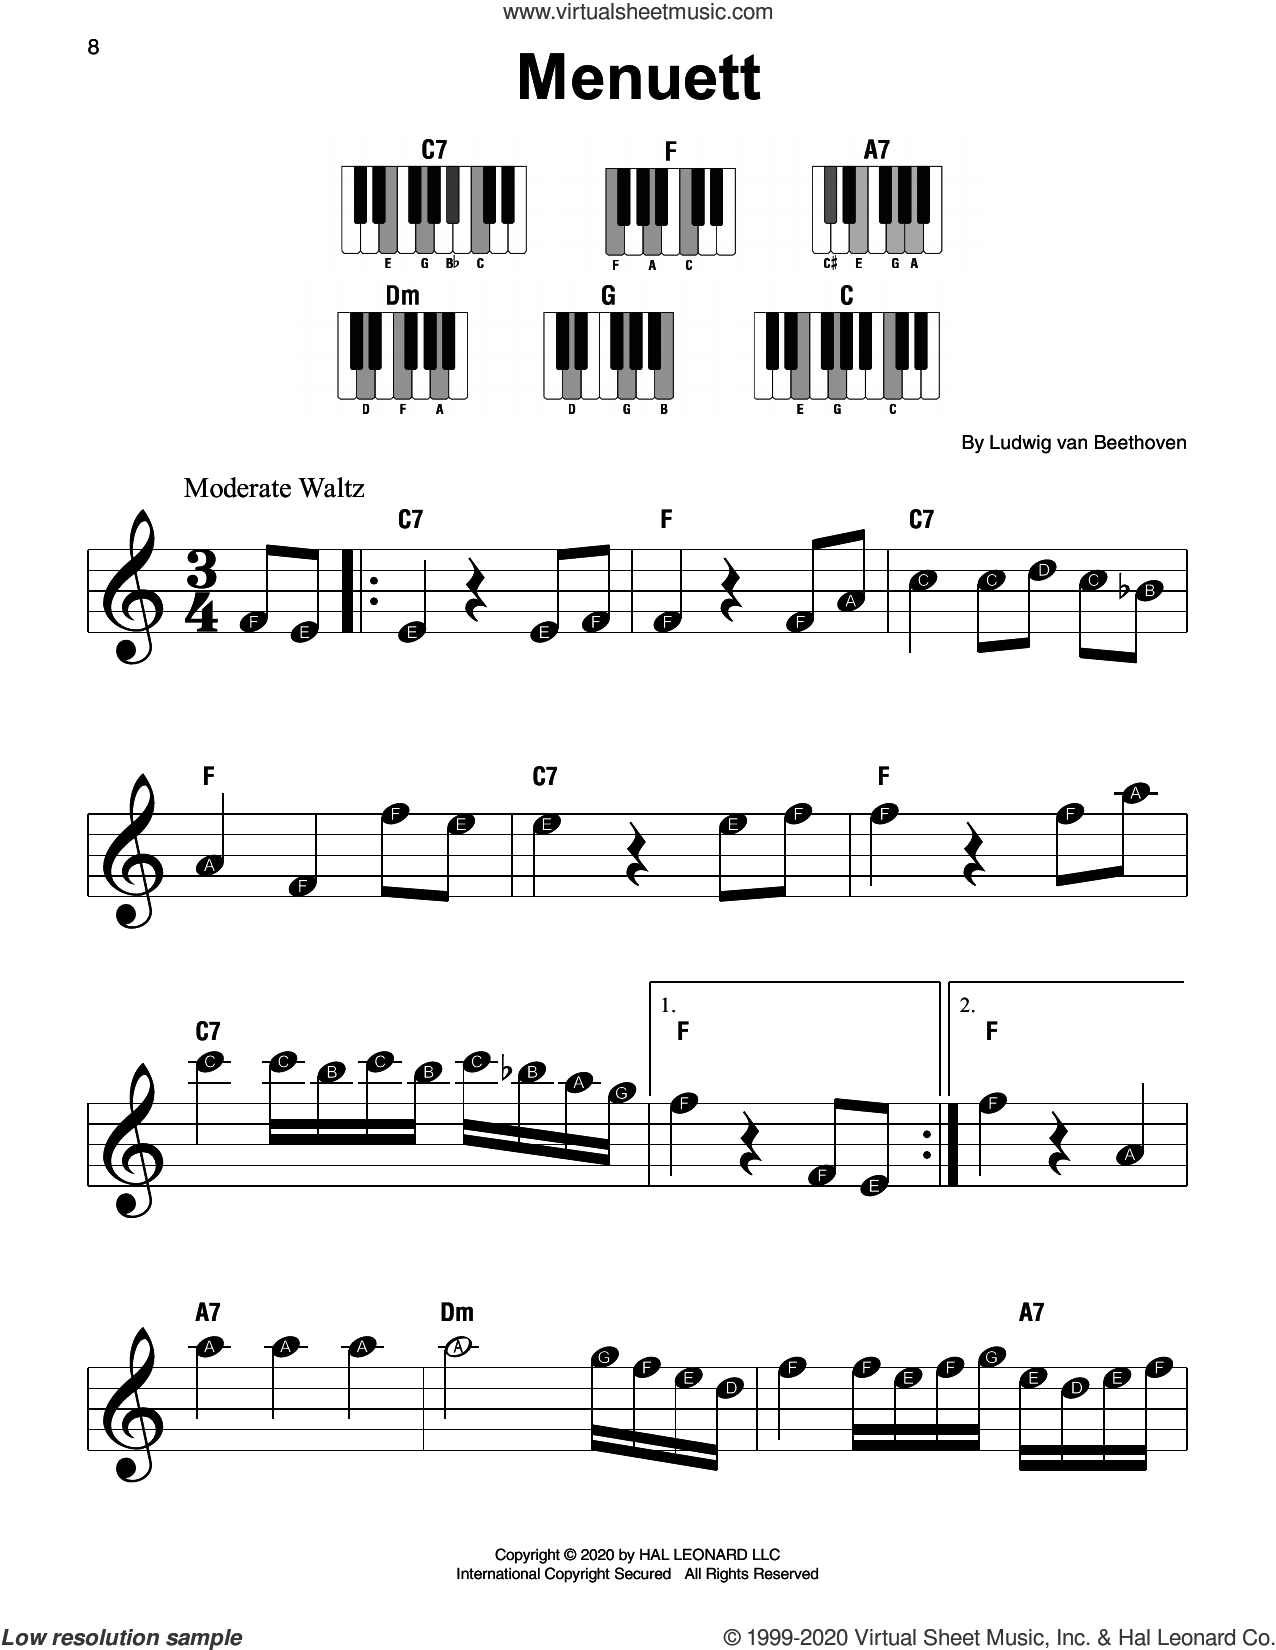 Menuett sheet music for piano solo by Ludwig van Beethoven, classical score, beginner skill level